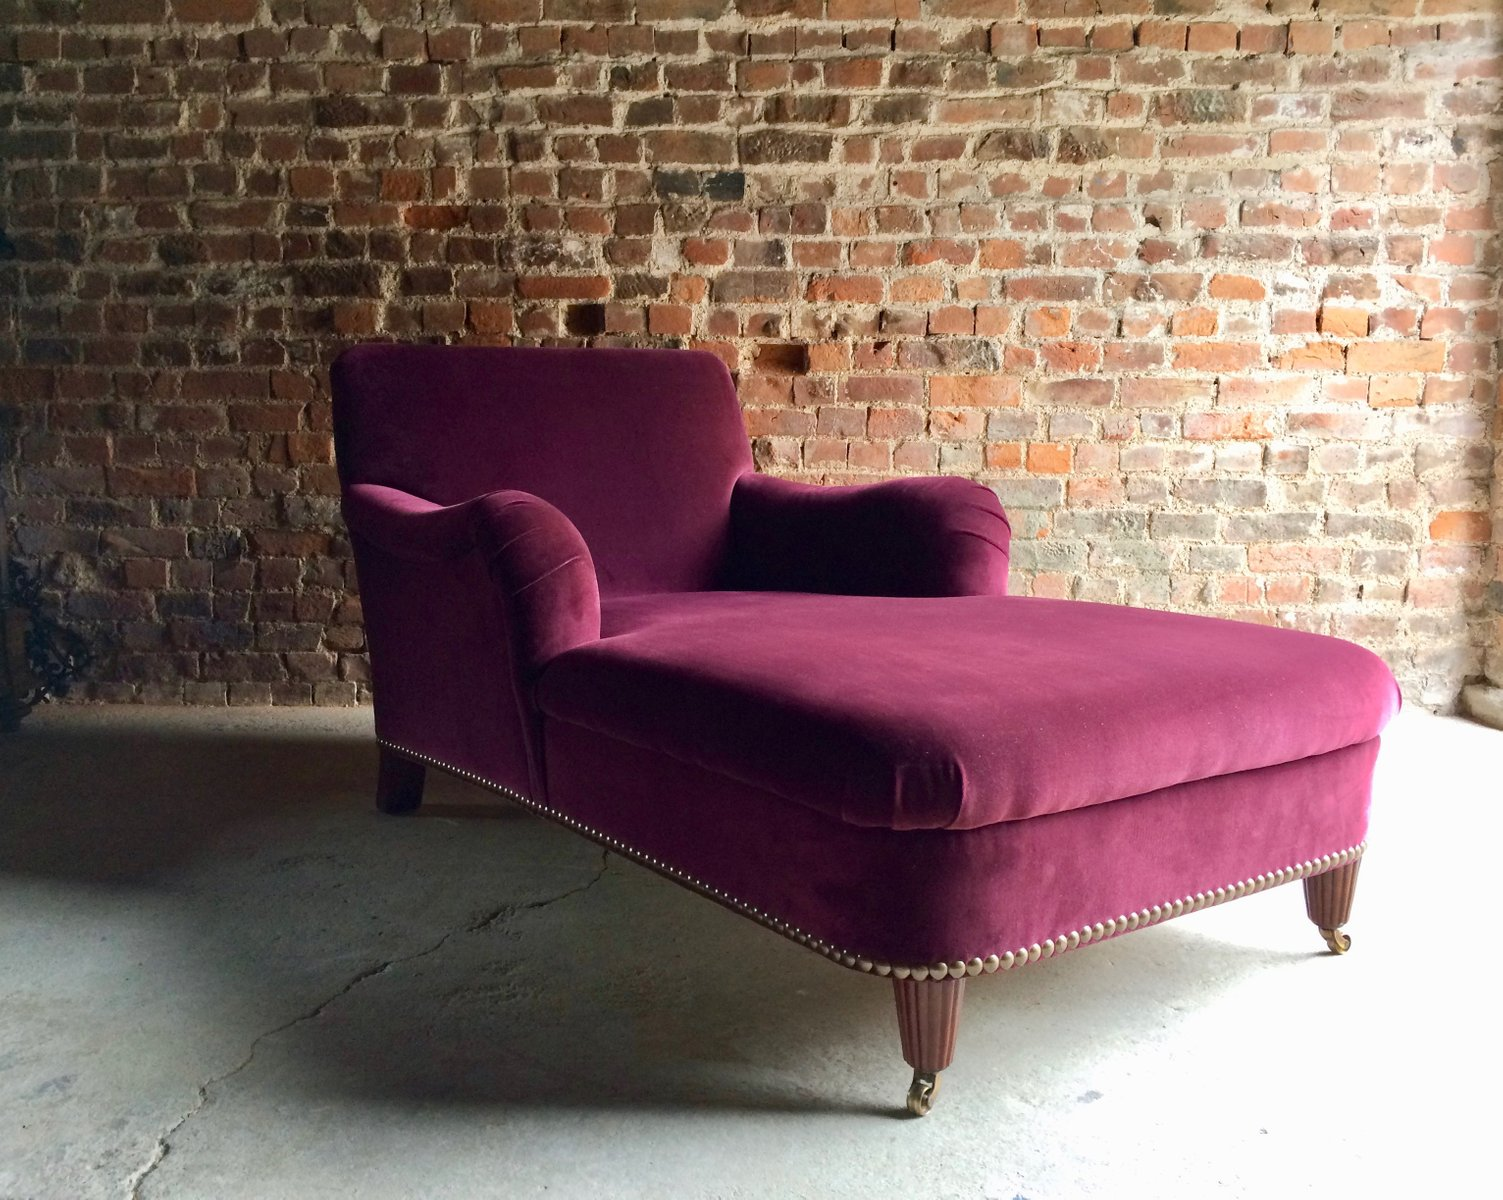 Bohemian chaise longue sofa by ralph lauren 2000s for for Chaise longue for sale uk